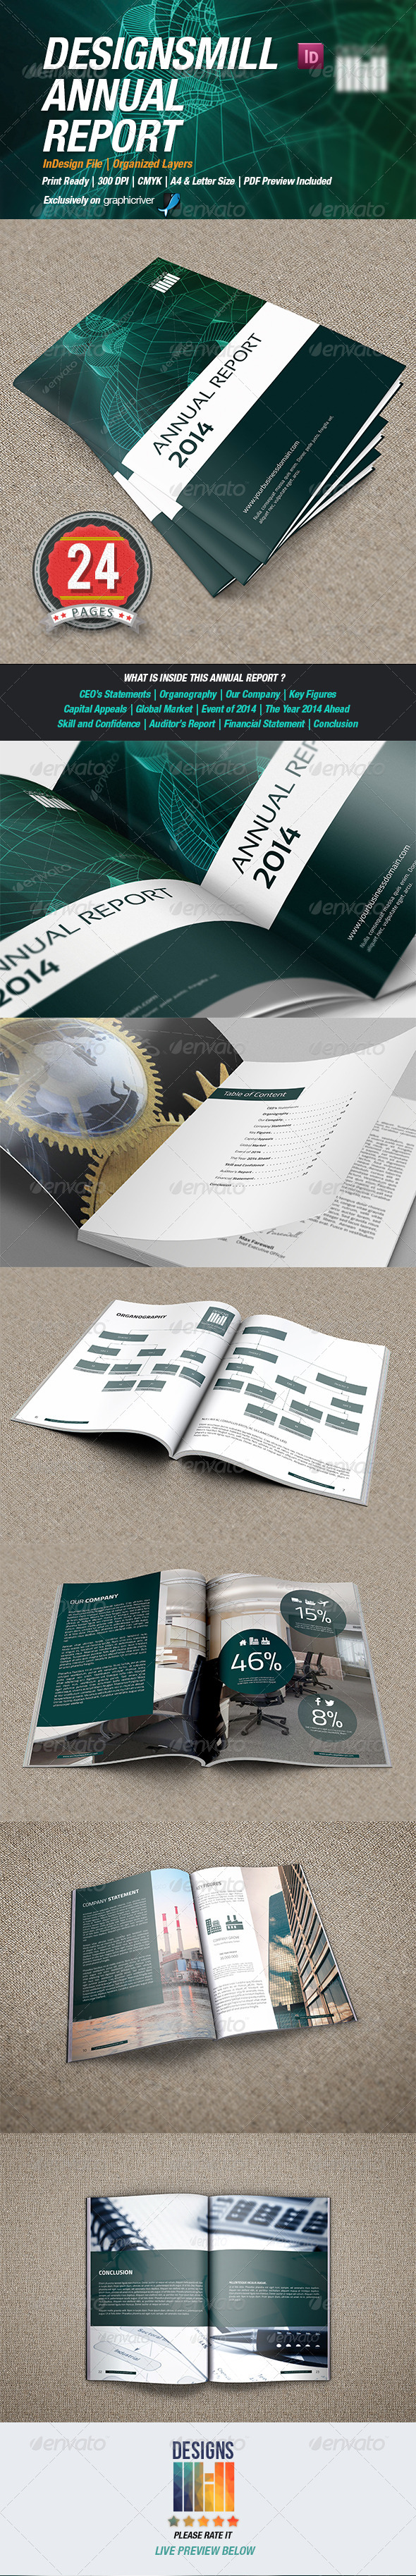 DesignsMill Annual Report - Corporate Brochures